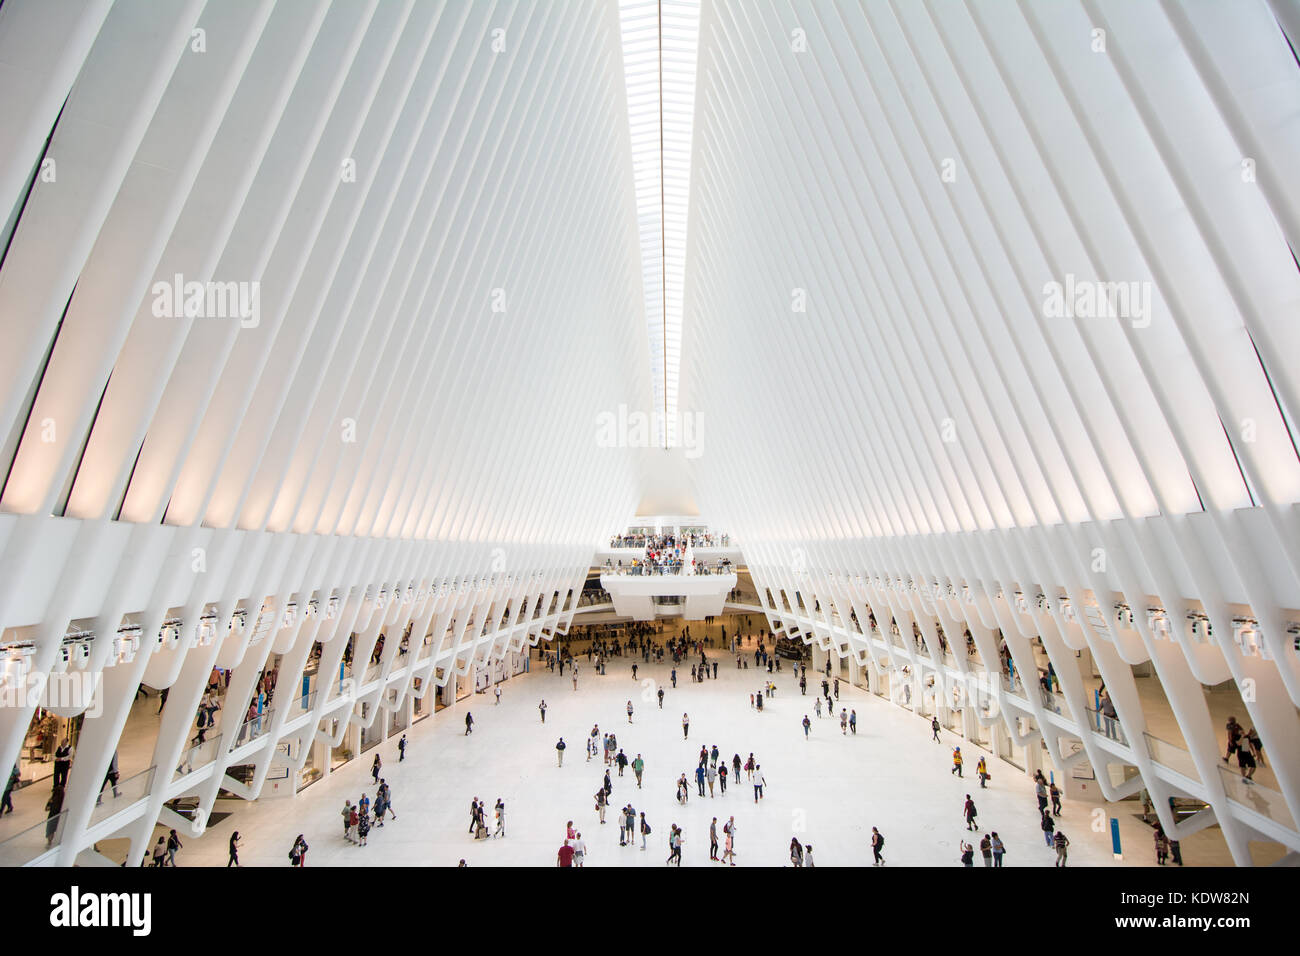 The impressive architecture of the Oculus at the World Trade Center transportation hub in New York city, United - Stock Image